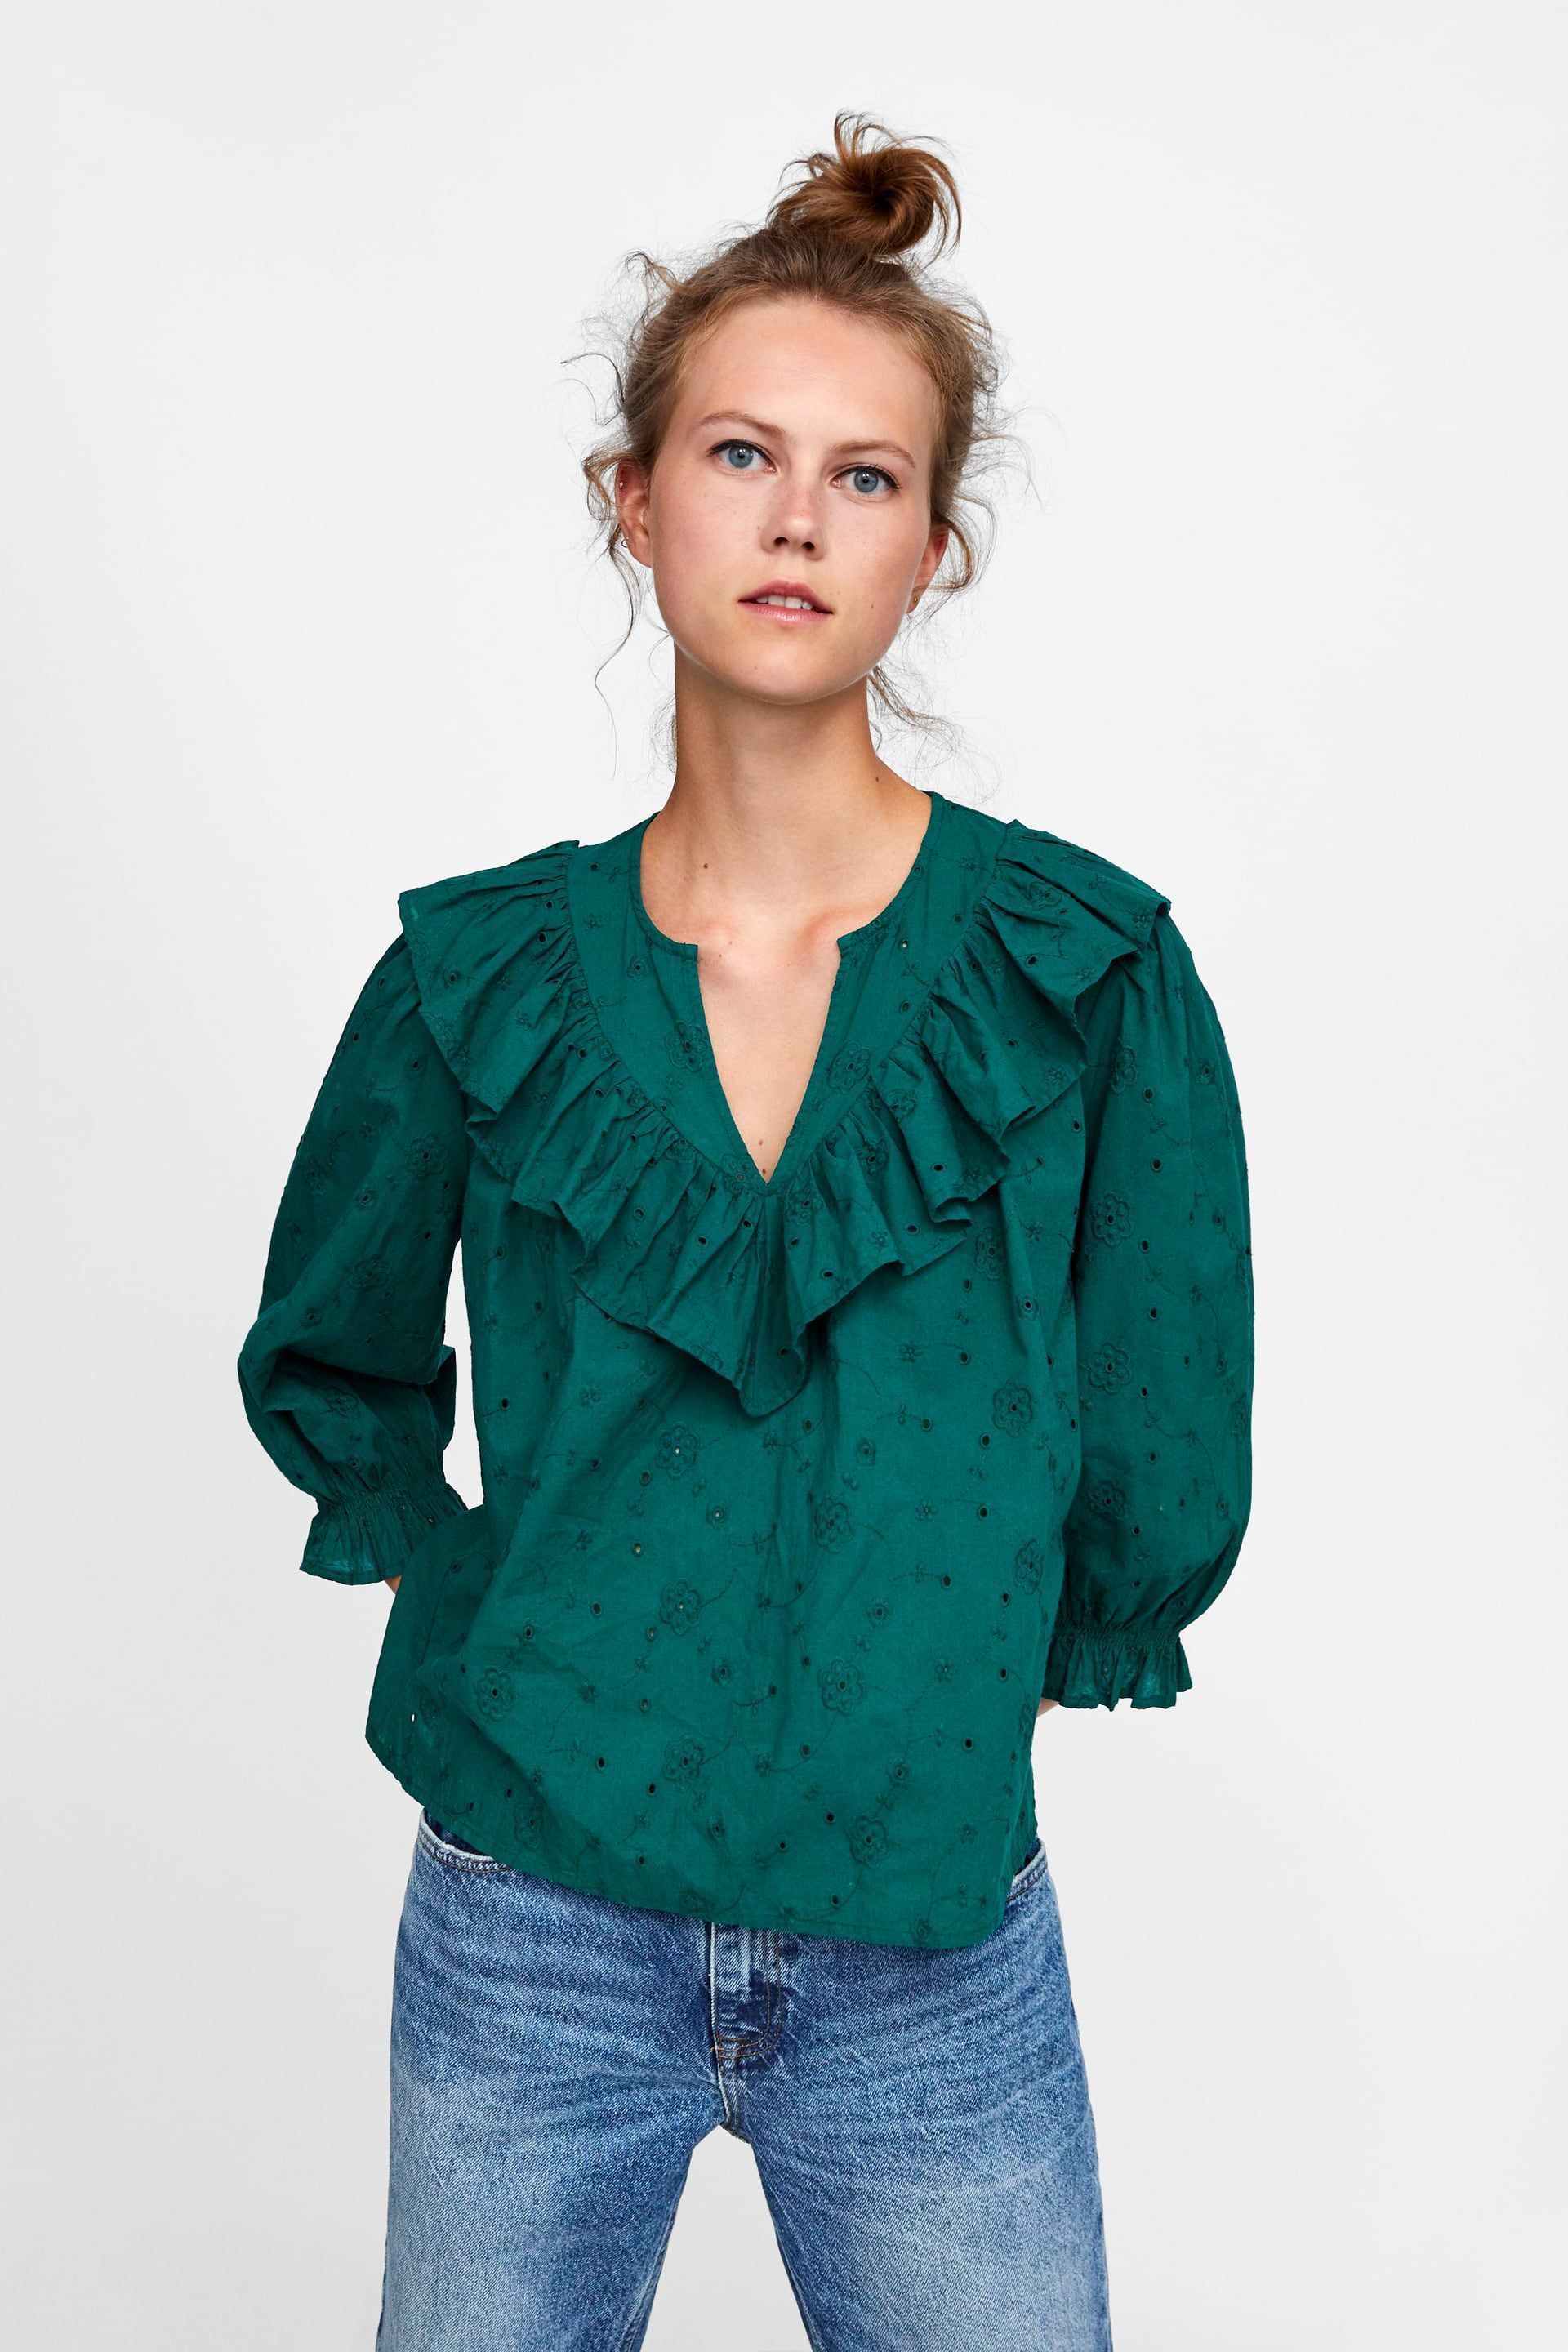 e28337c7e85c1 Image 5 of RUFFLED OPENWORK EMBROIDERY TOP from Zara